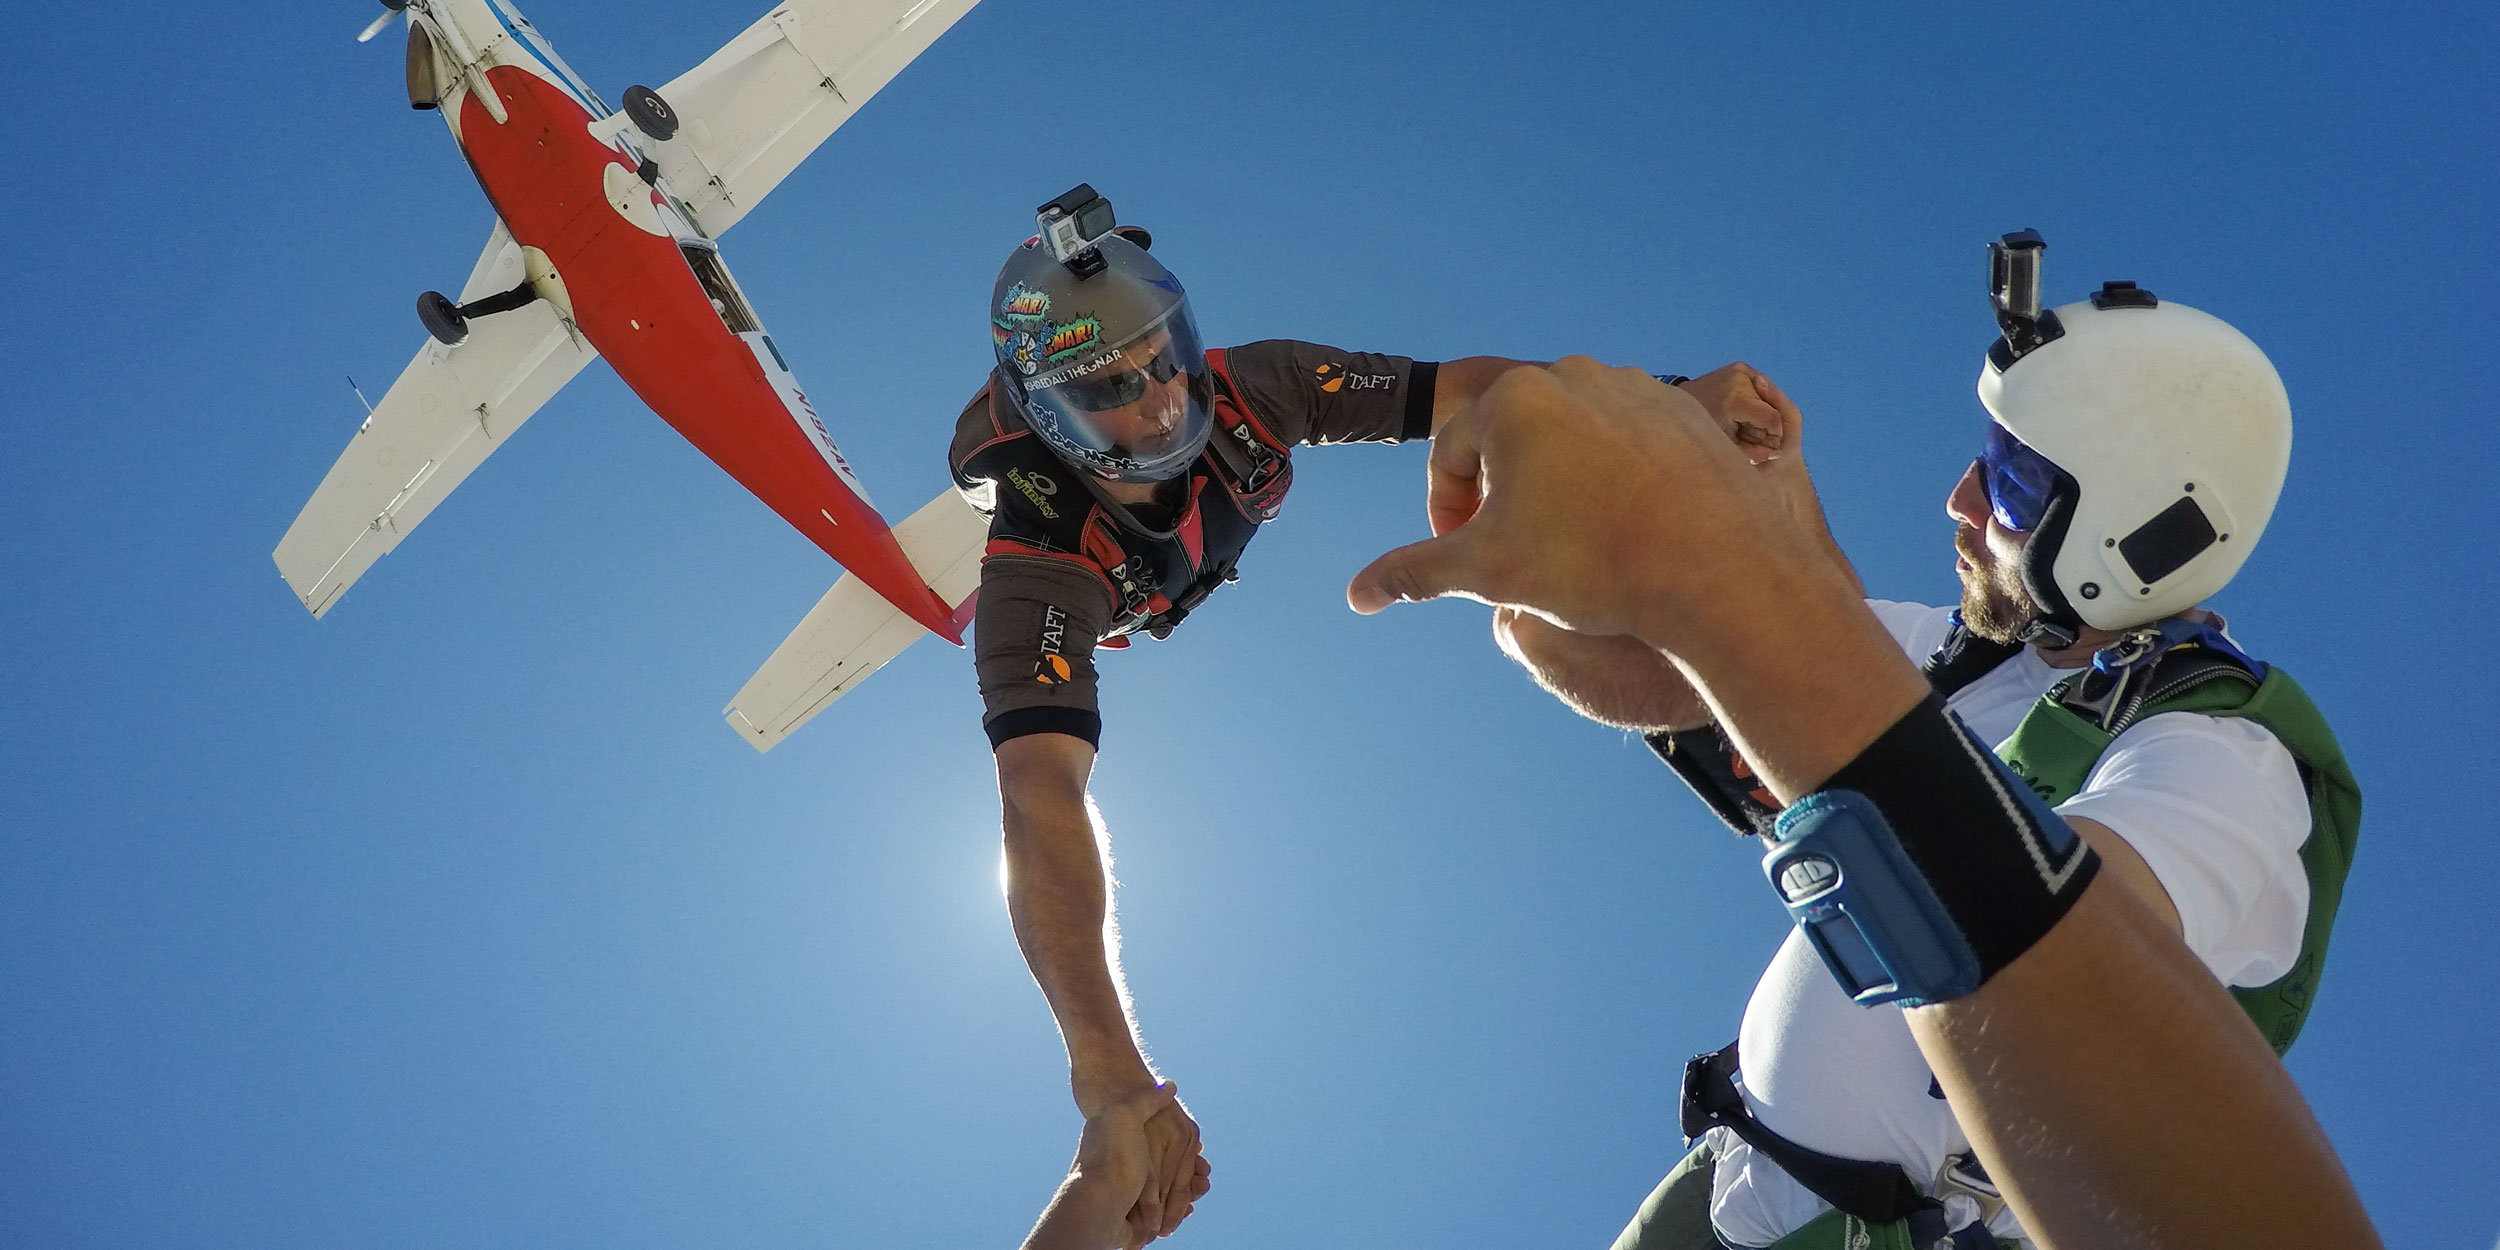 Half-and-Half-(Skydiver)-0065.jpg